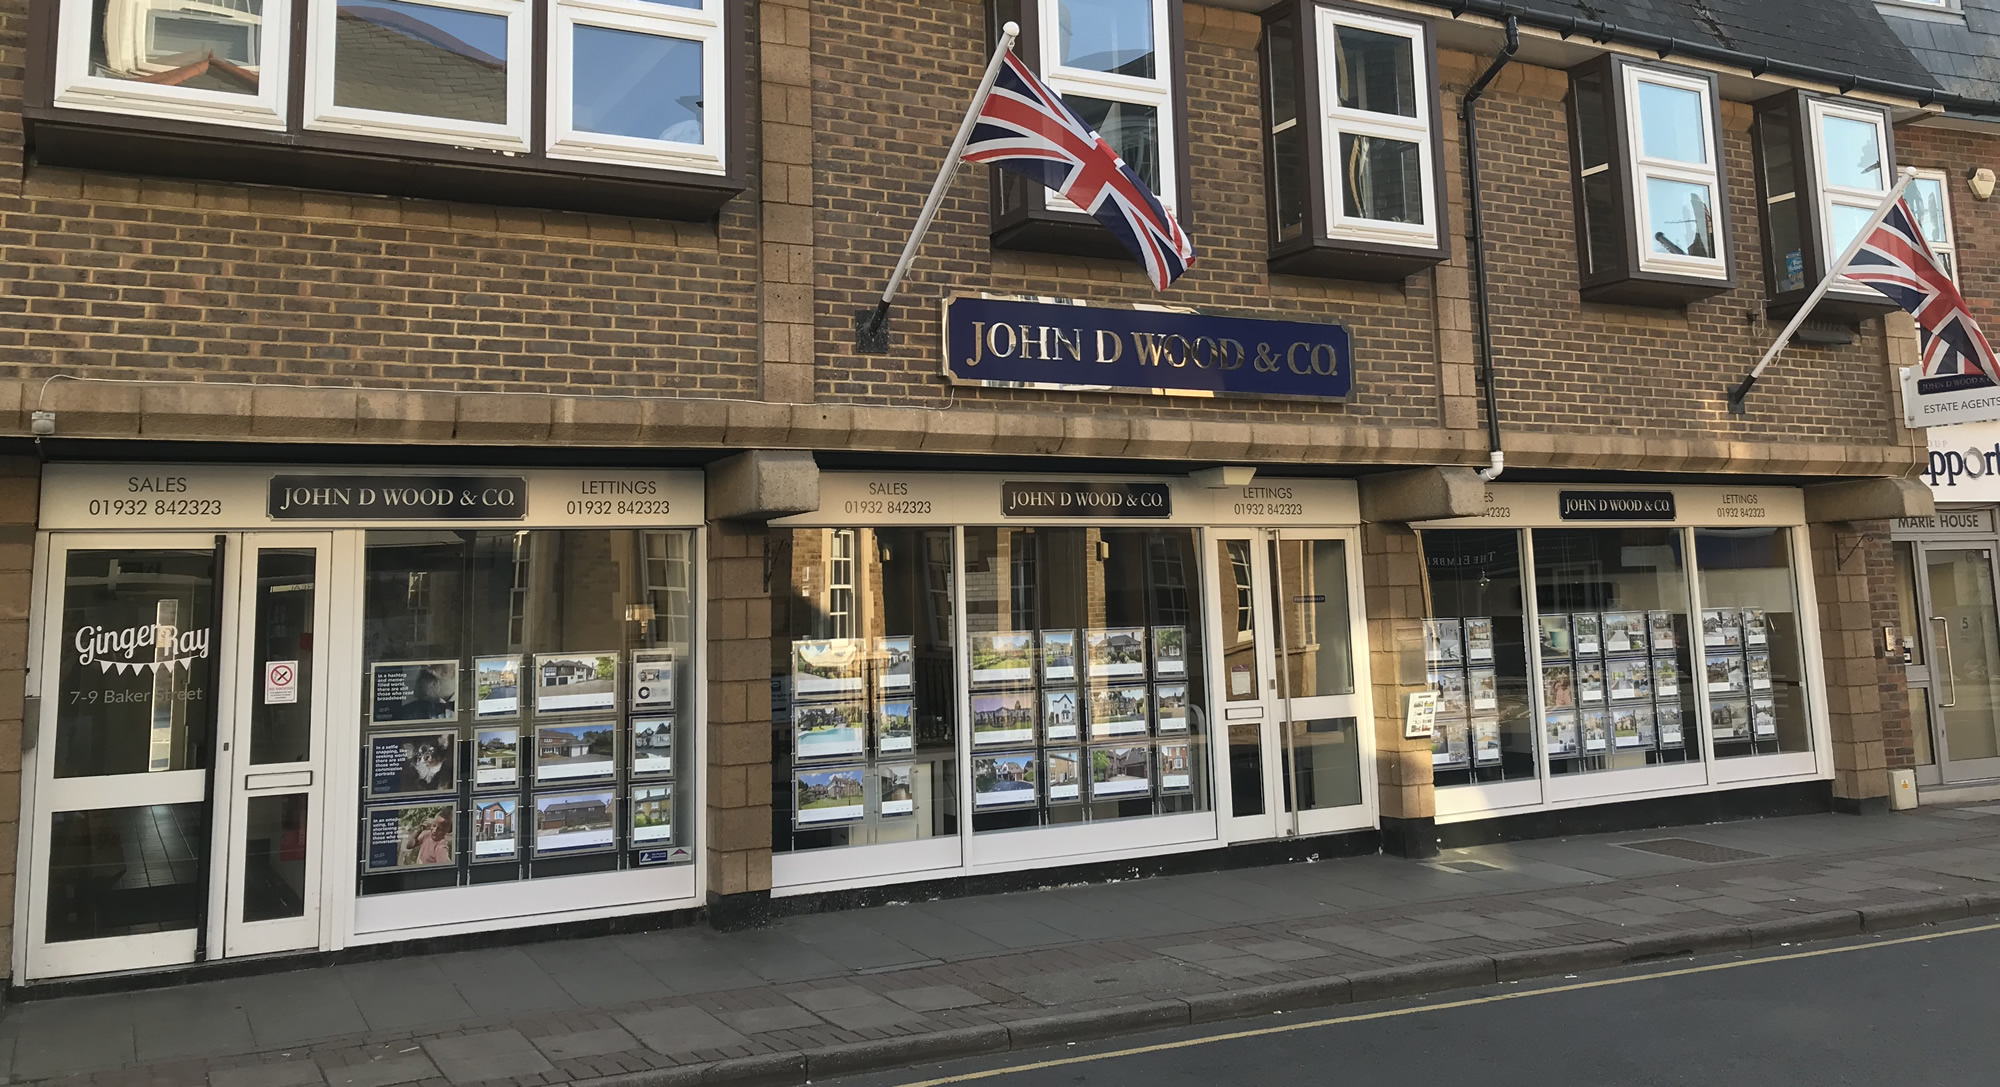 John D Wood & Co Weybridge Surrey